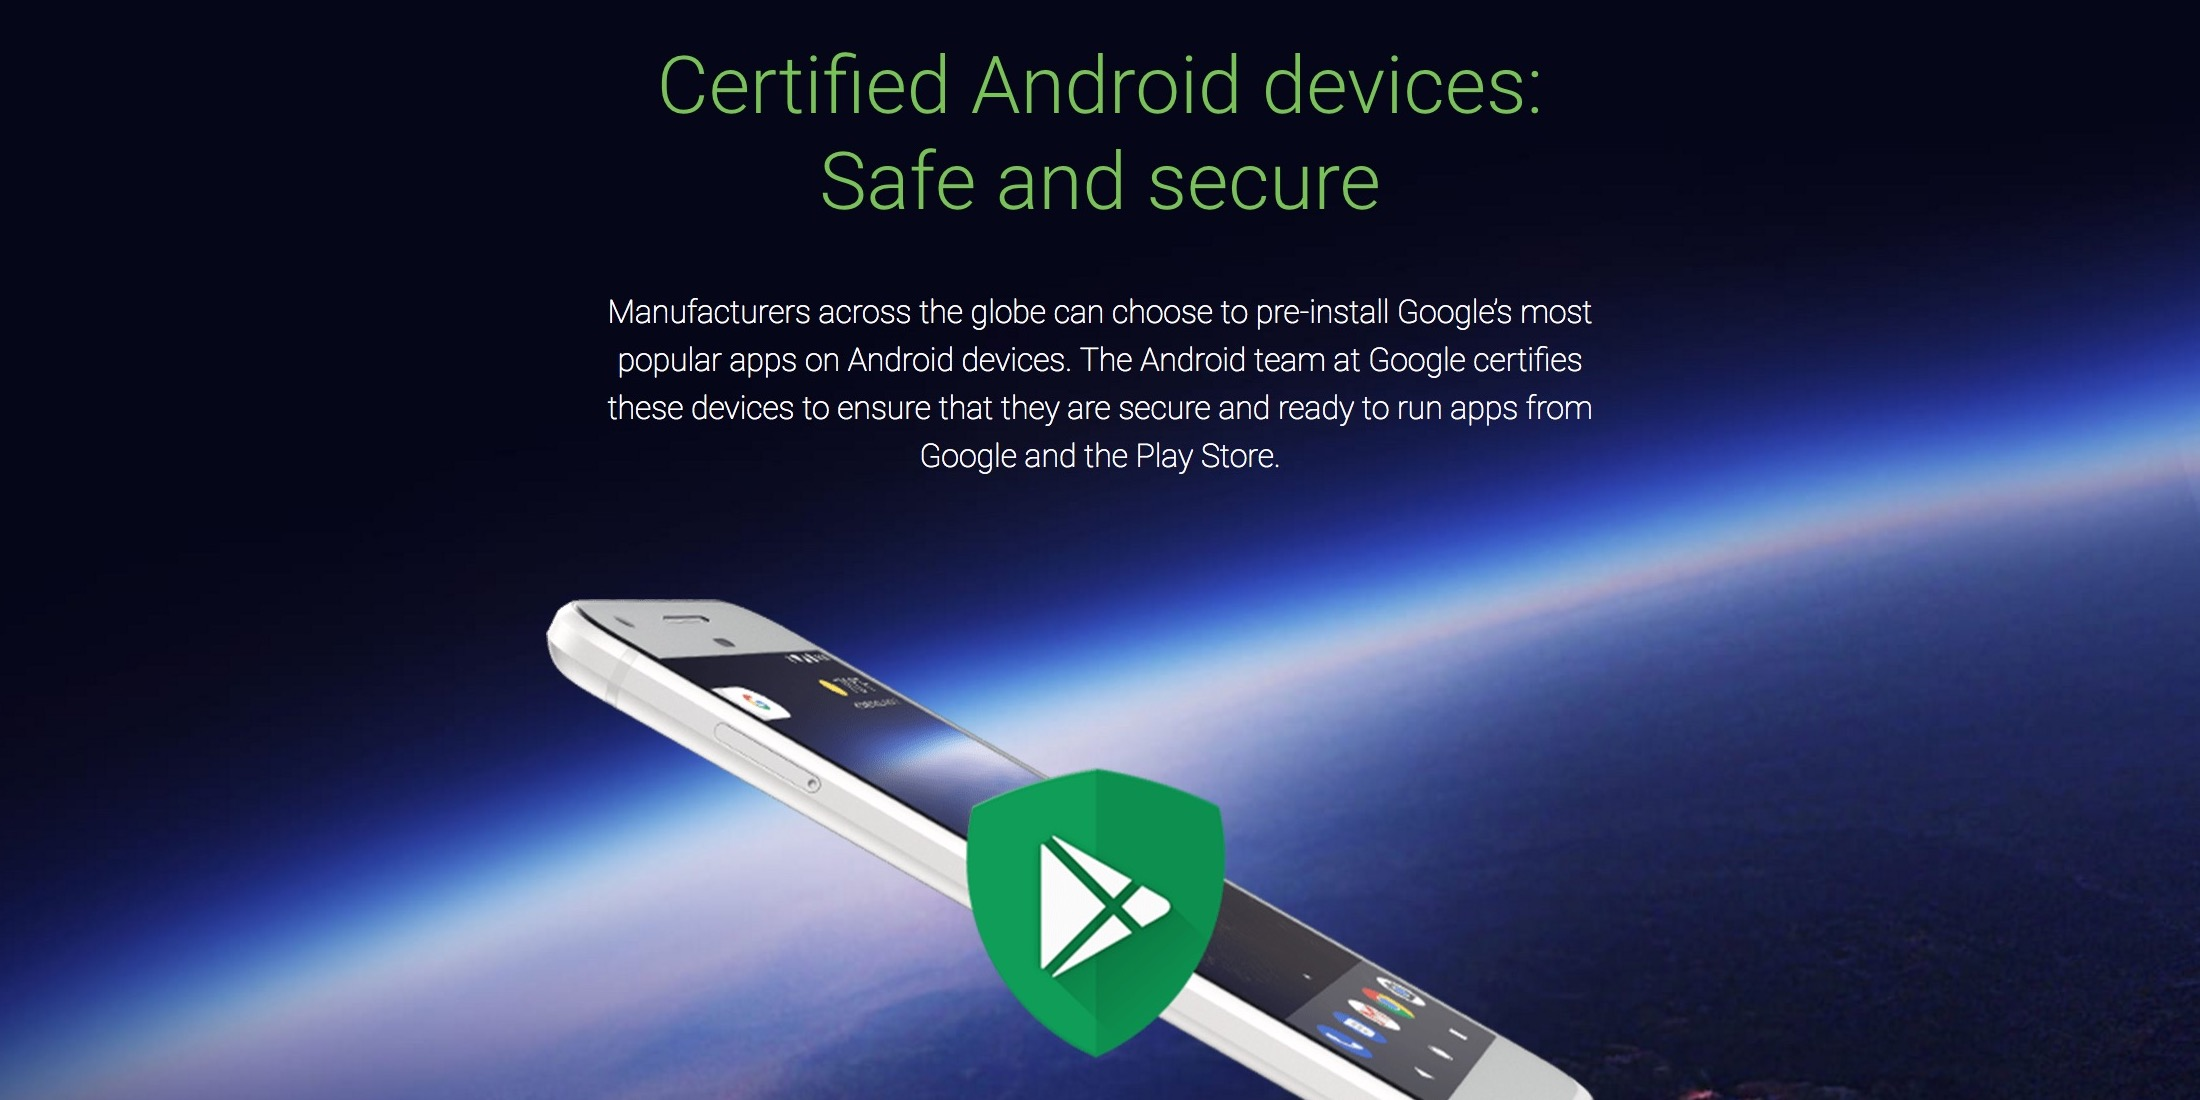 Google announces 'Certified Android devices,' Google Play Protect branding on packaging